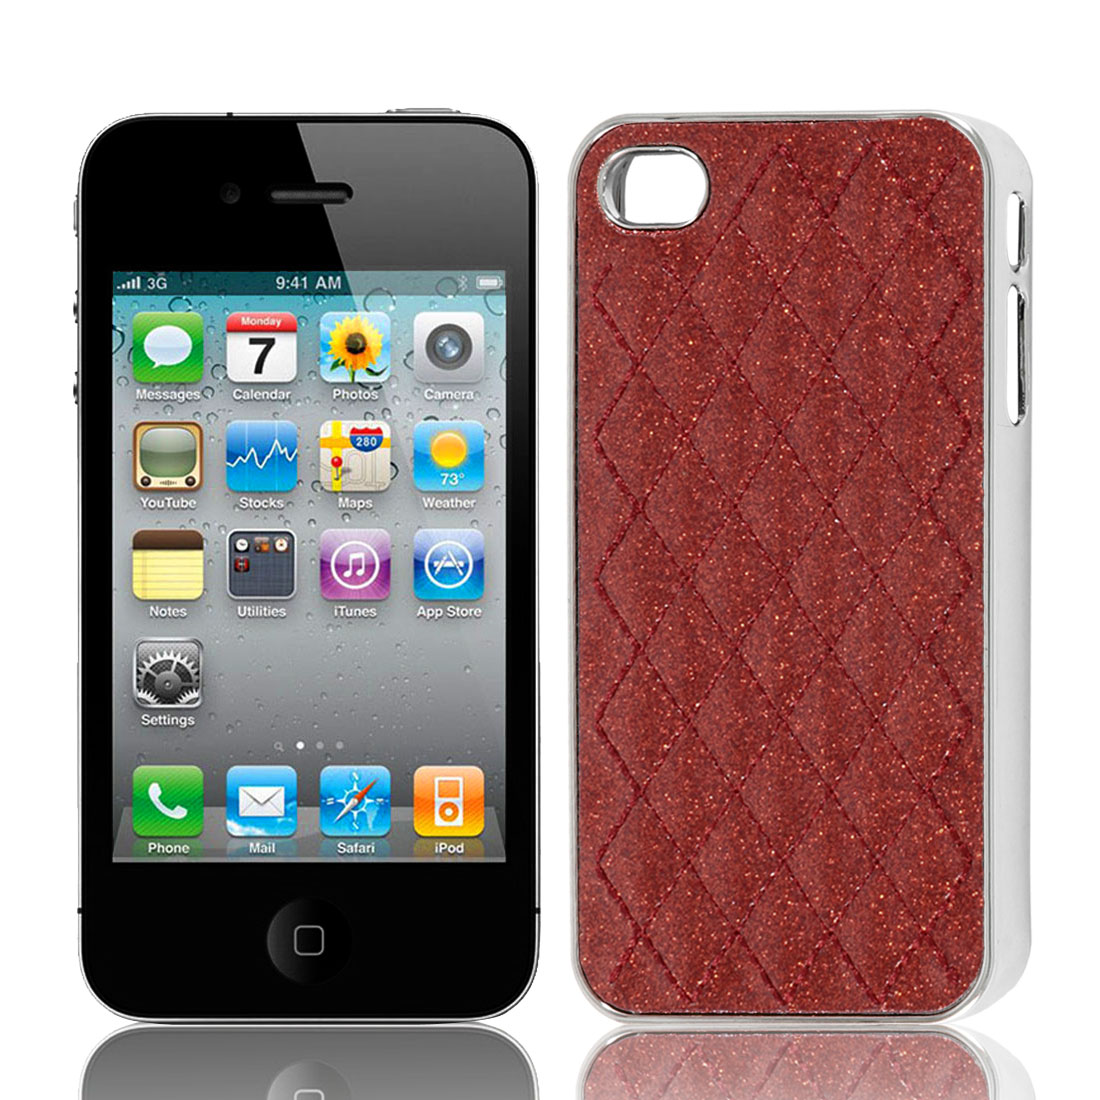 Red Glitter Powder Argyle Pattern Hard Back Case Cover for iPhone 4 4G 4S 4GS